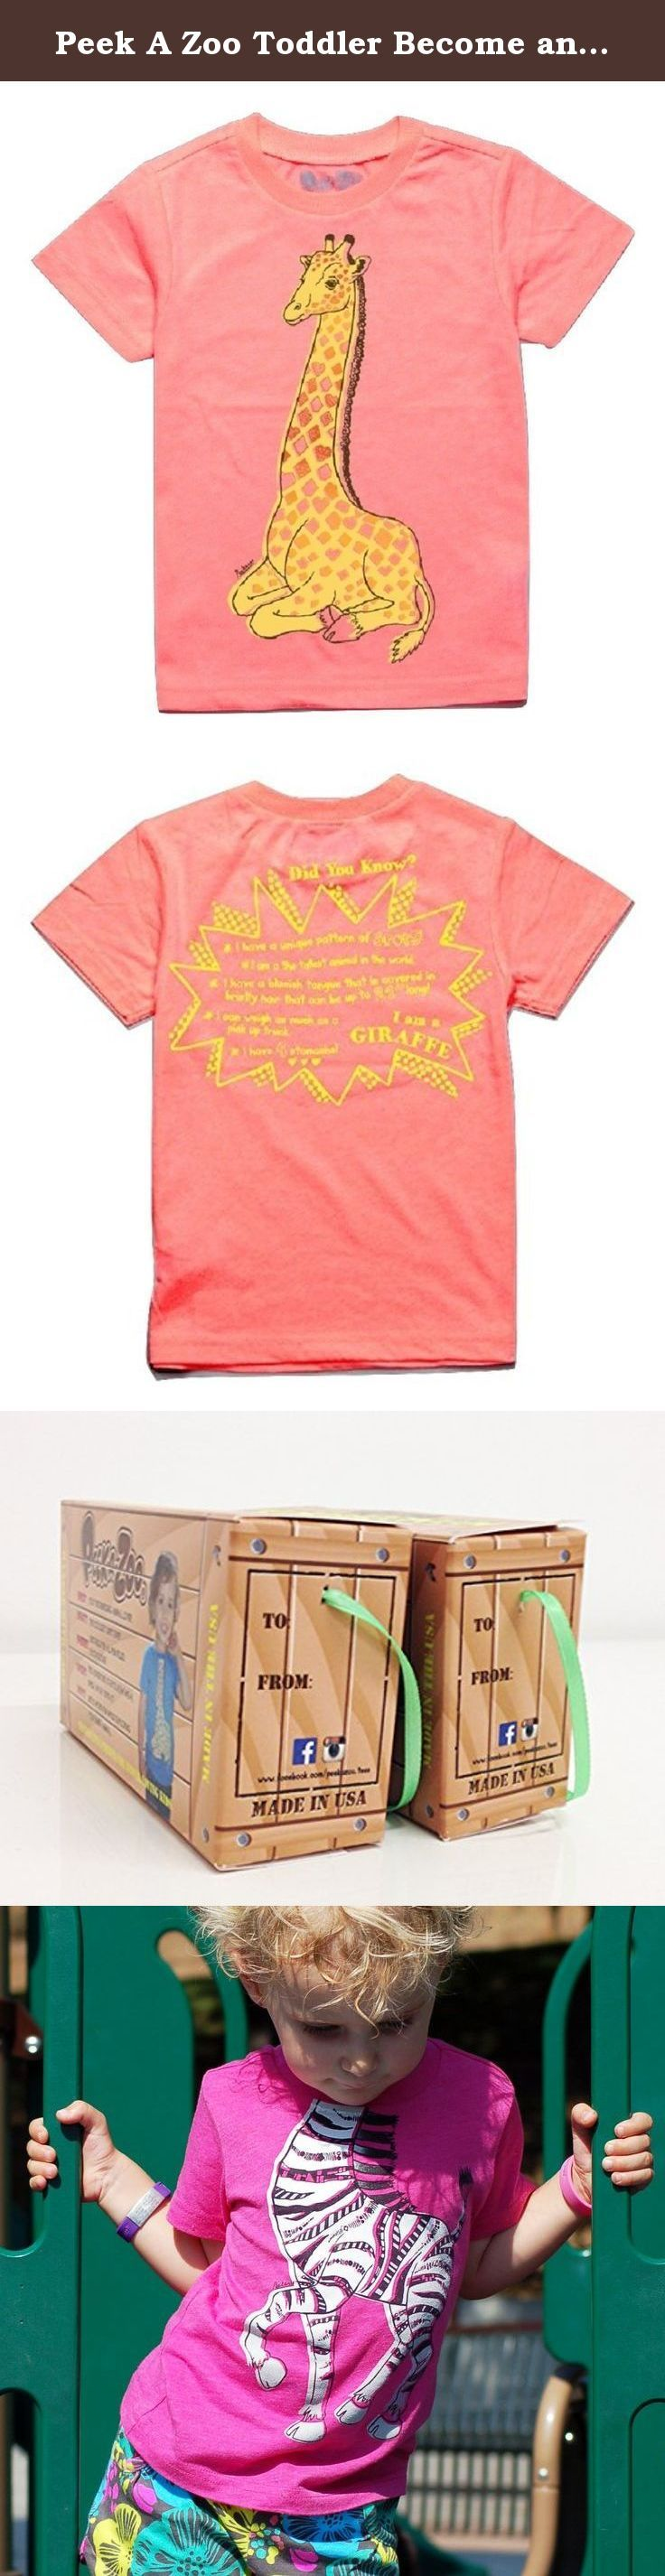 Peek A Zoo Toddler Become an Animal Short Sleeve Tshirt- Giraffe Neon Coral - 3T. What a cute and genius idea! Kids can quickly become their favorite animal by putting on this tee that features the animal's body while the head is for the kid. Trust us, kids go crazy with these awesome tees! But it gets better - the back features educational fun facts about each animal! Cute, comfy, fun, interactive and educational....and made in the USA. 3/4 sleeves. Whether you are going out for a trip…